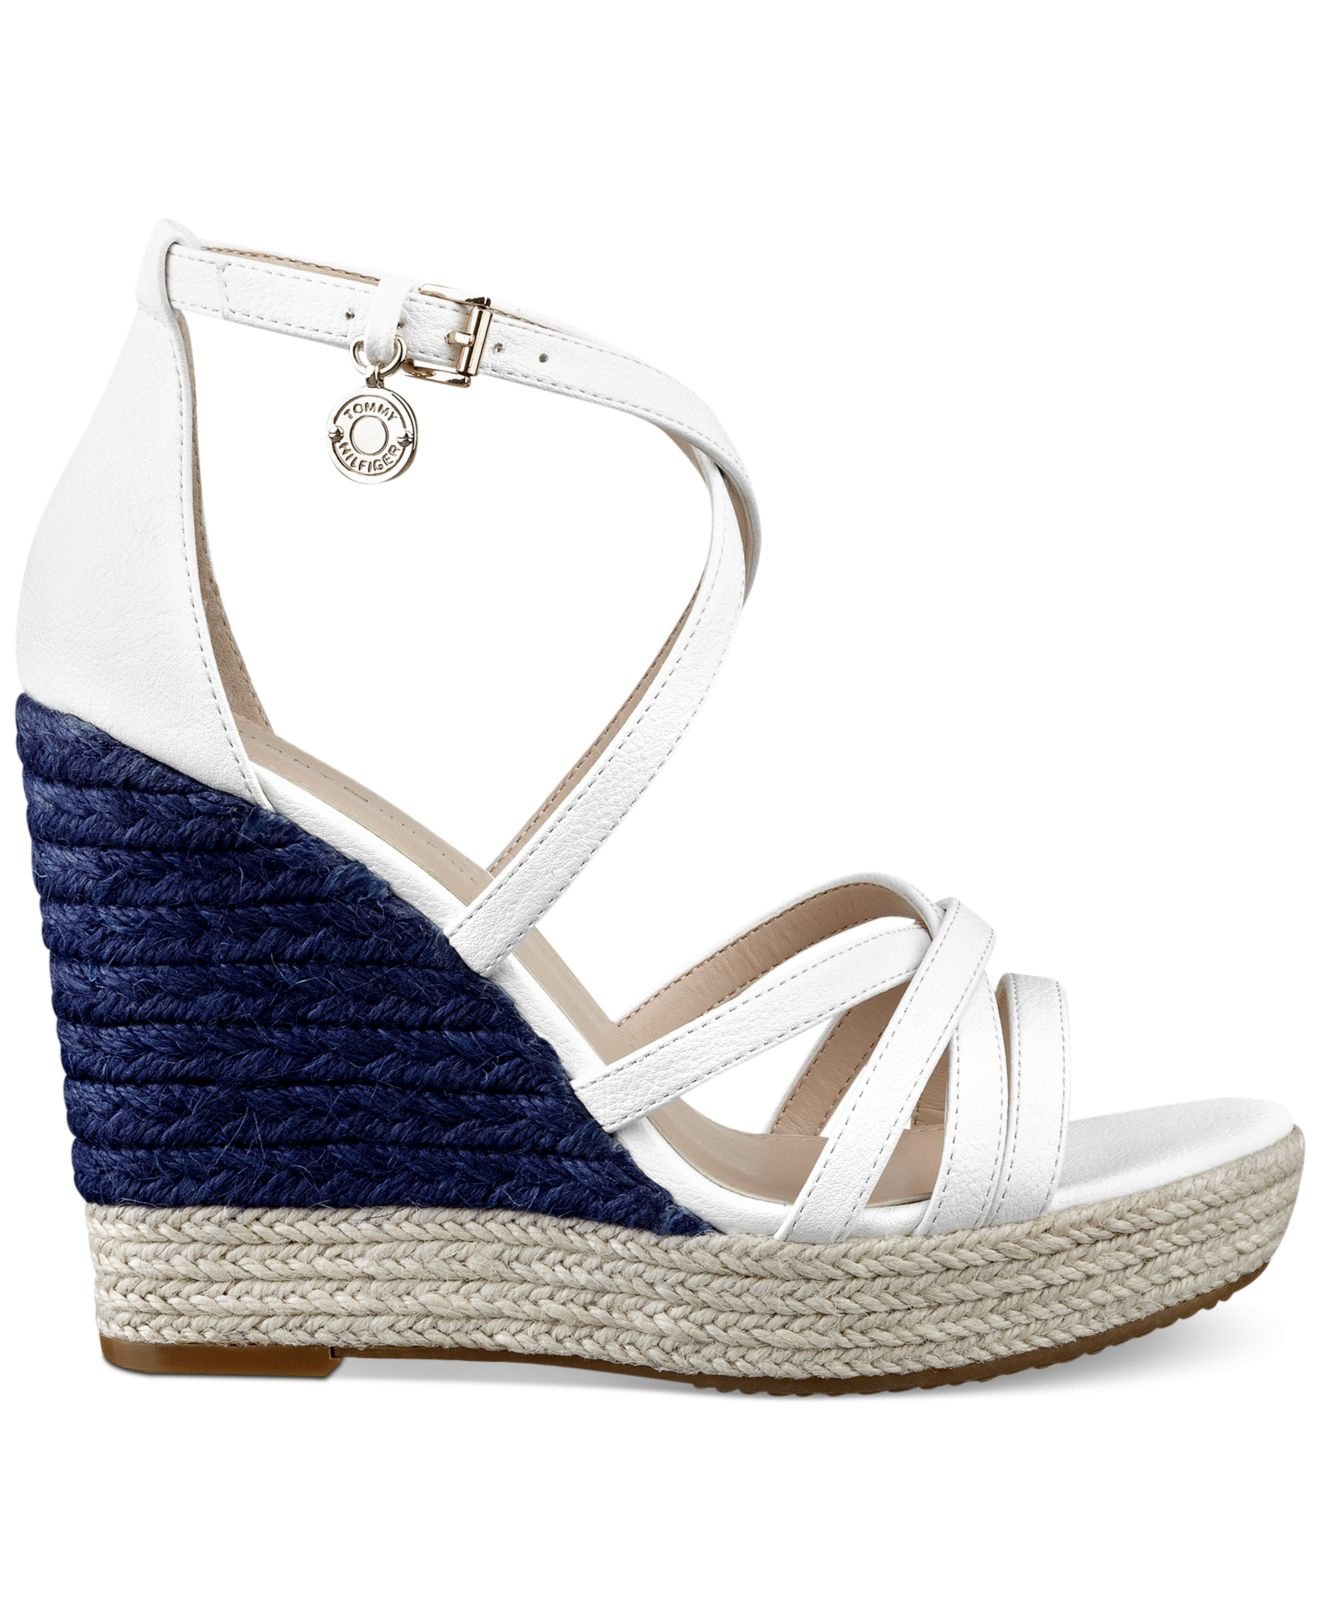 117f188a5268 Gallery. Previously sold at  Macy s · Women s White Platform Wedges ...